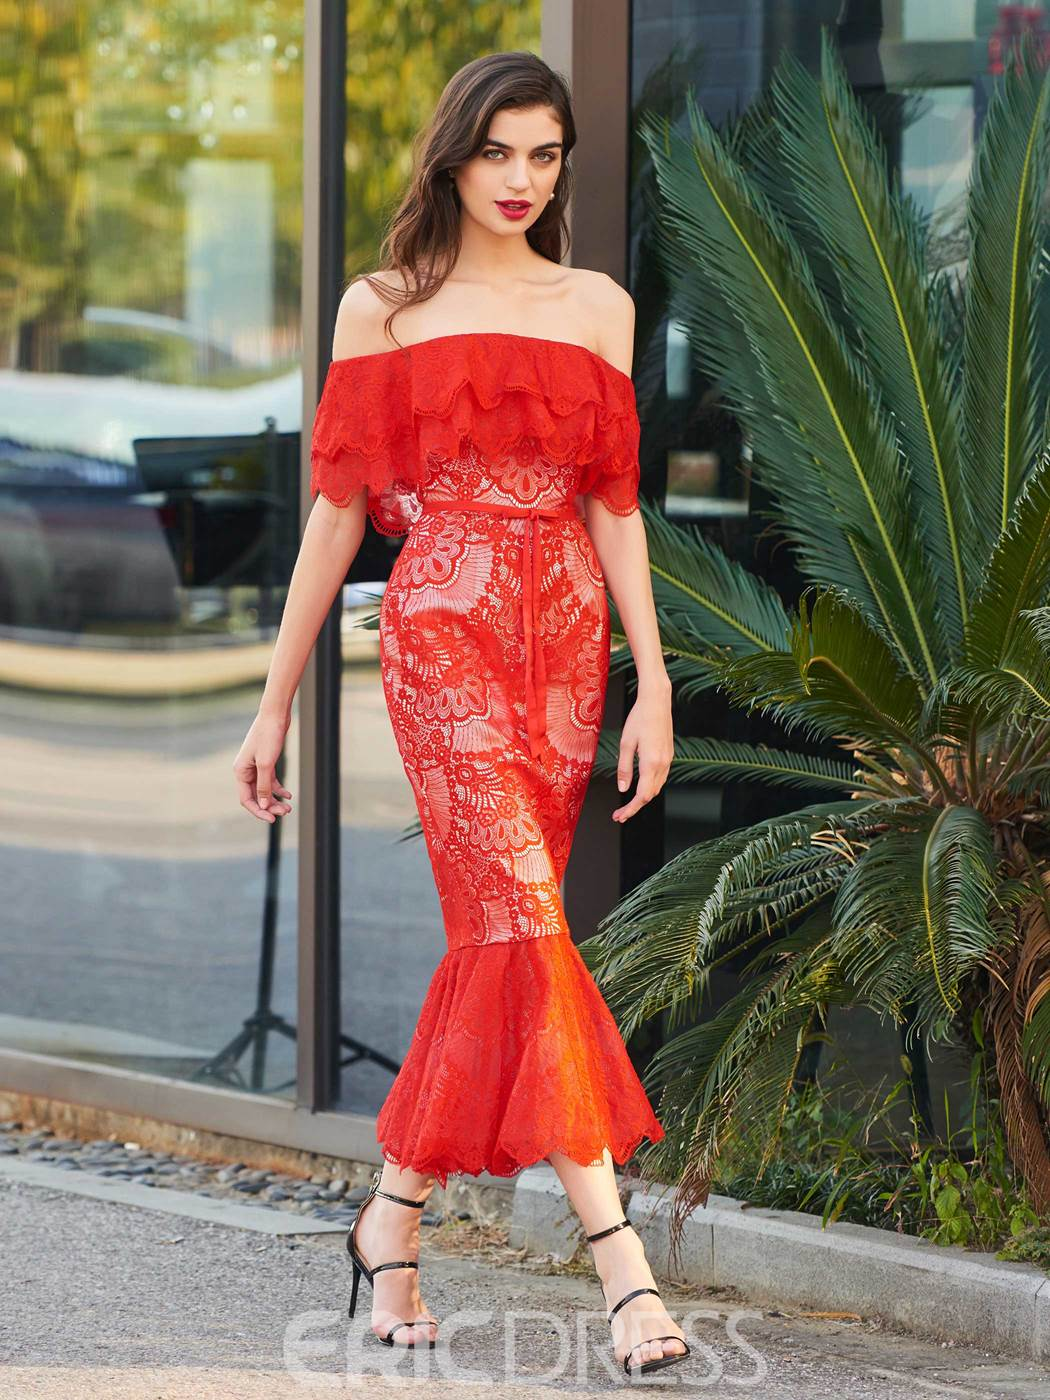 Ericdress Off The Shoulder Mermaid Lace Red Cocktail Dress